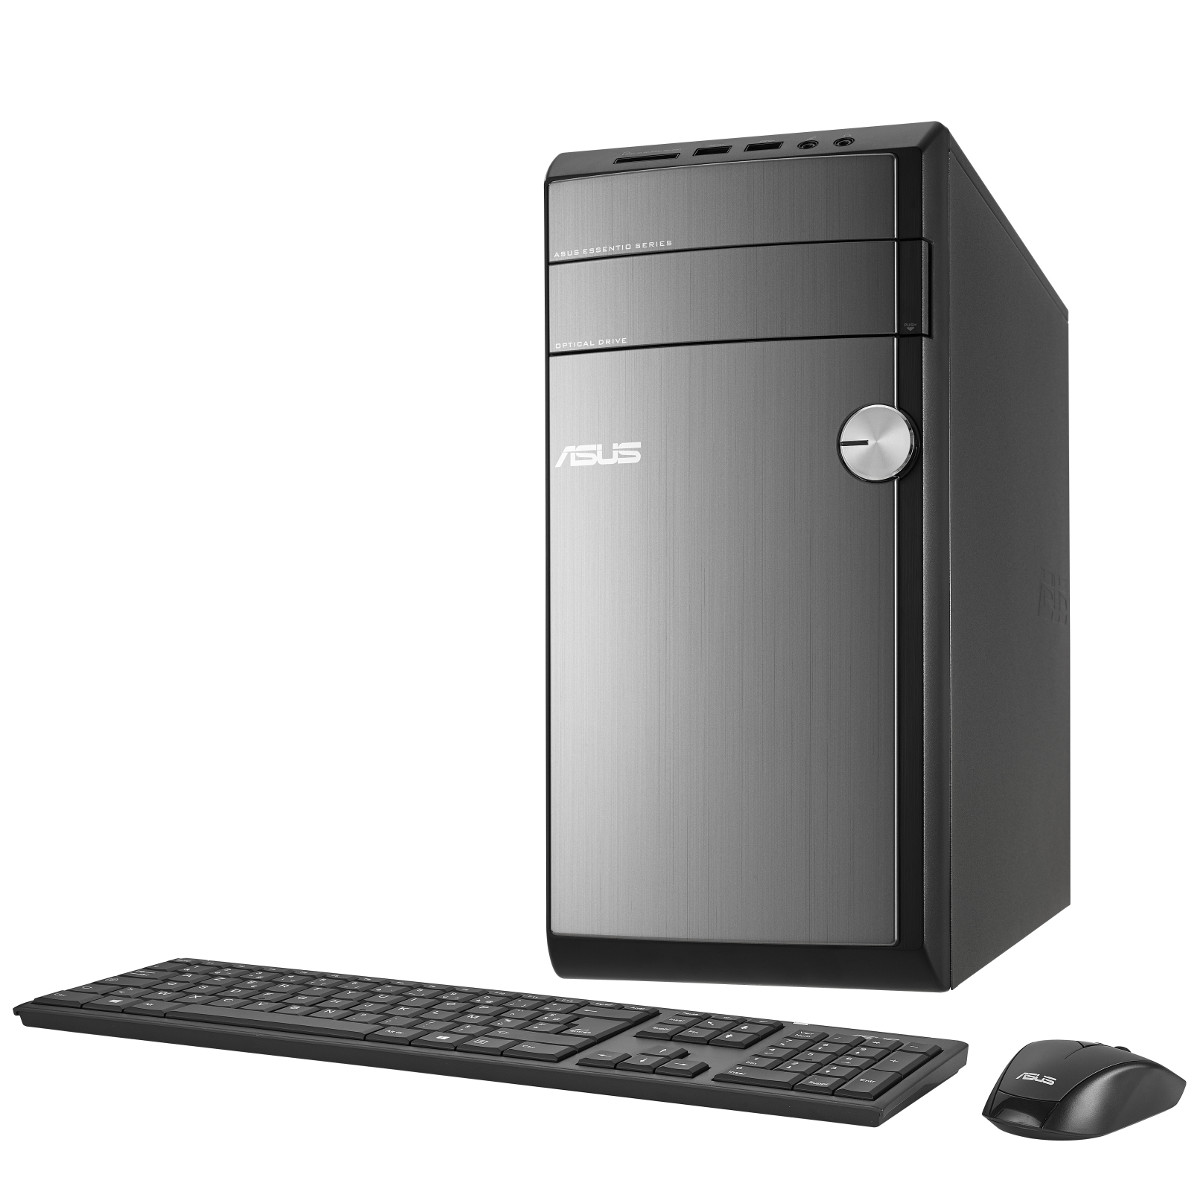 asus m31ad fr005s pc de bureau asus sur. Black Bedroom Furniture Sets. Home Design Ideas